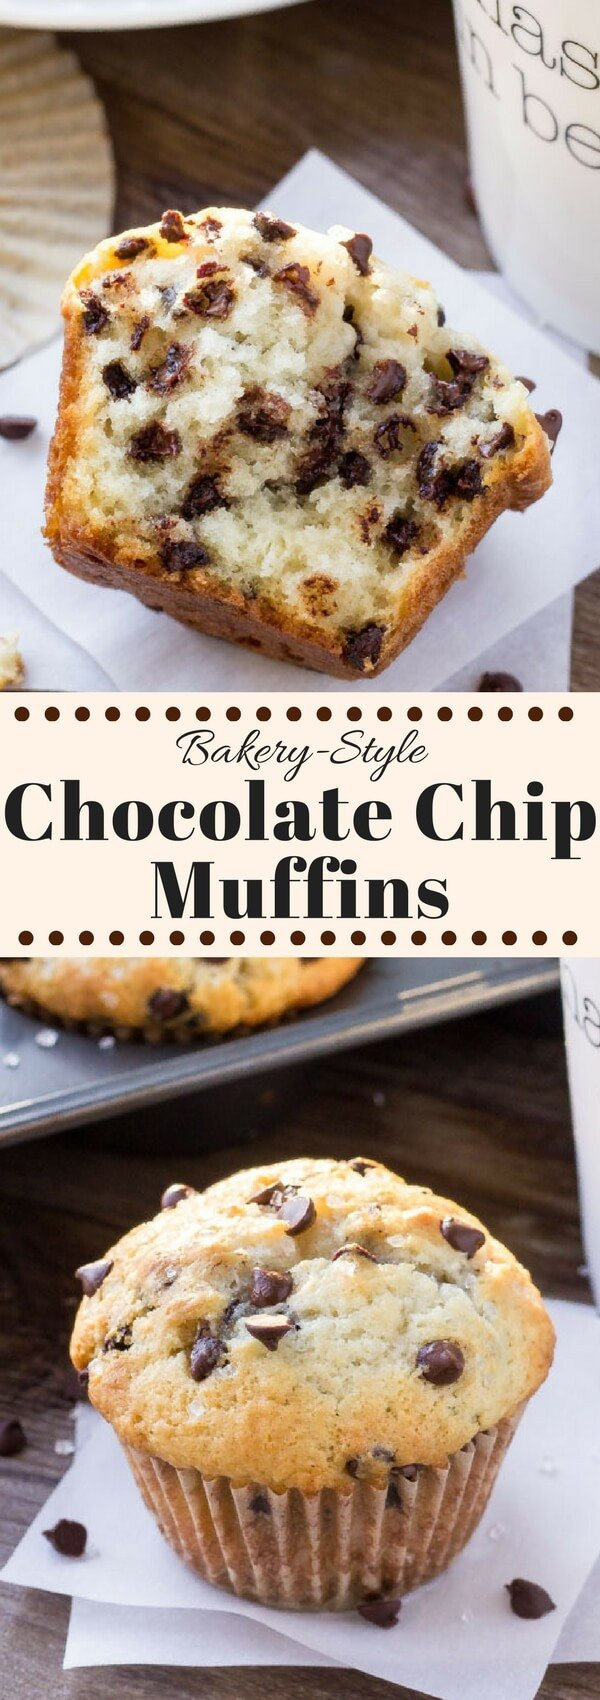 Big, buttery, fluffy & filled with chocolate chips - these bakery style chocolate chip muffins will be your new favorite. #chocolatechipmuffins #bakerystylemuffins #chocolatechips #muffins